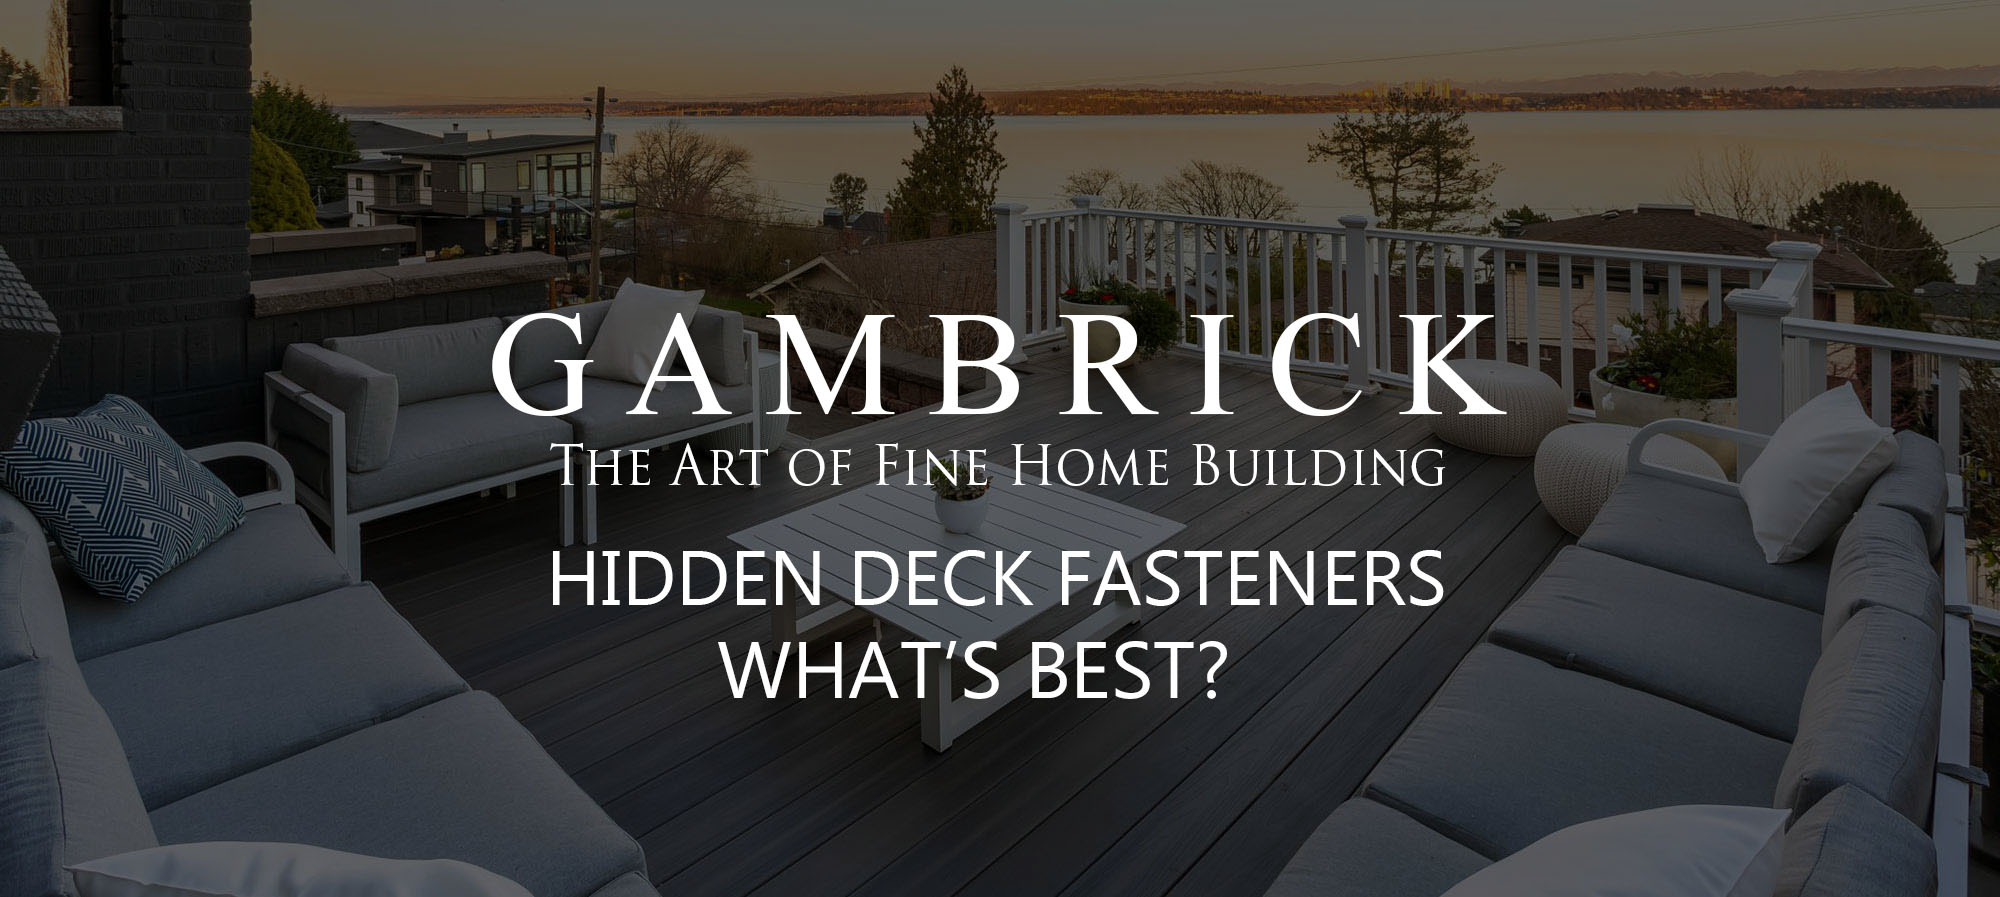 hidden deck fasteners | what's best| beautiful waterfront deck with hidden fasteners banner pic - Gambrick